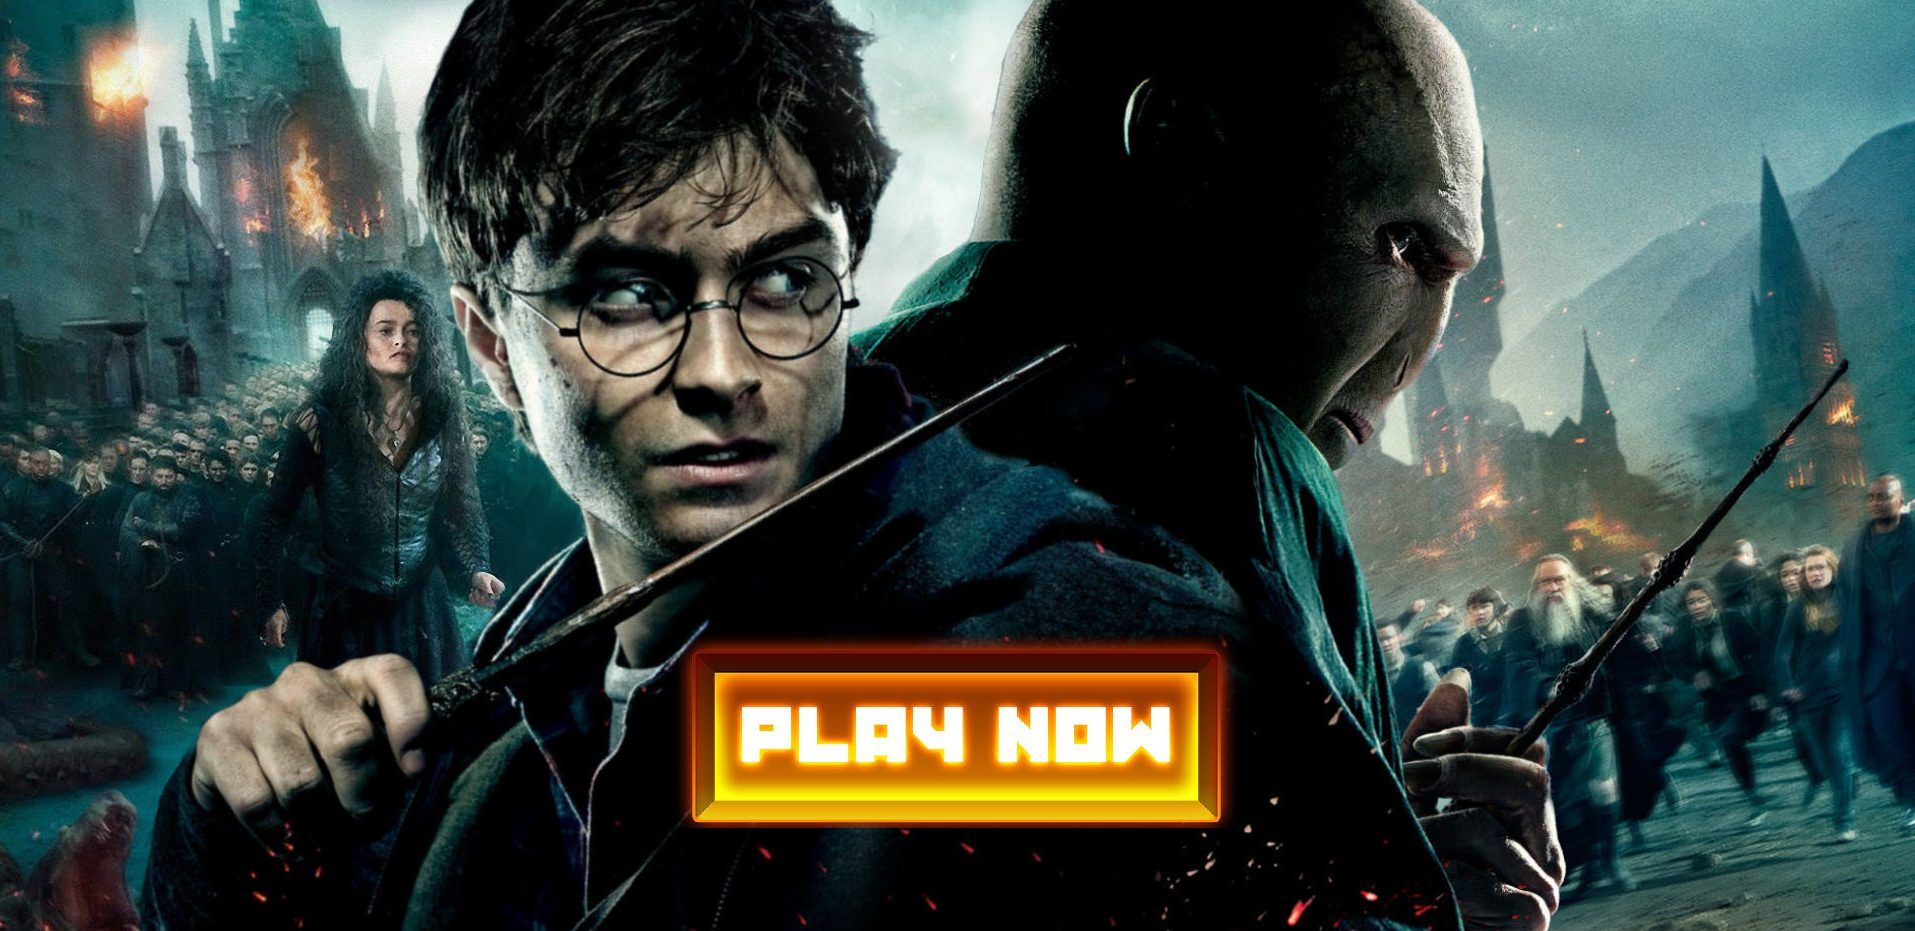 If You Score Under 100% On This Harry Potter Quiz, You're